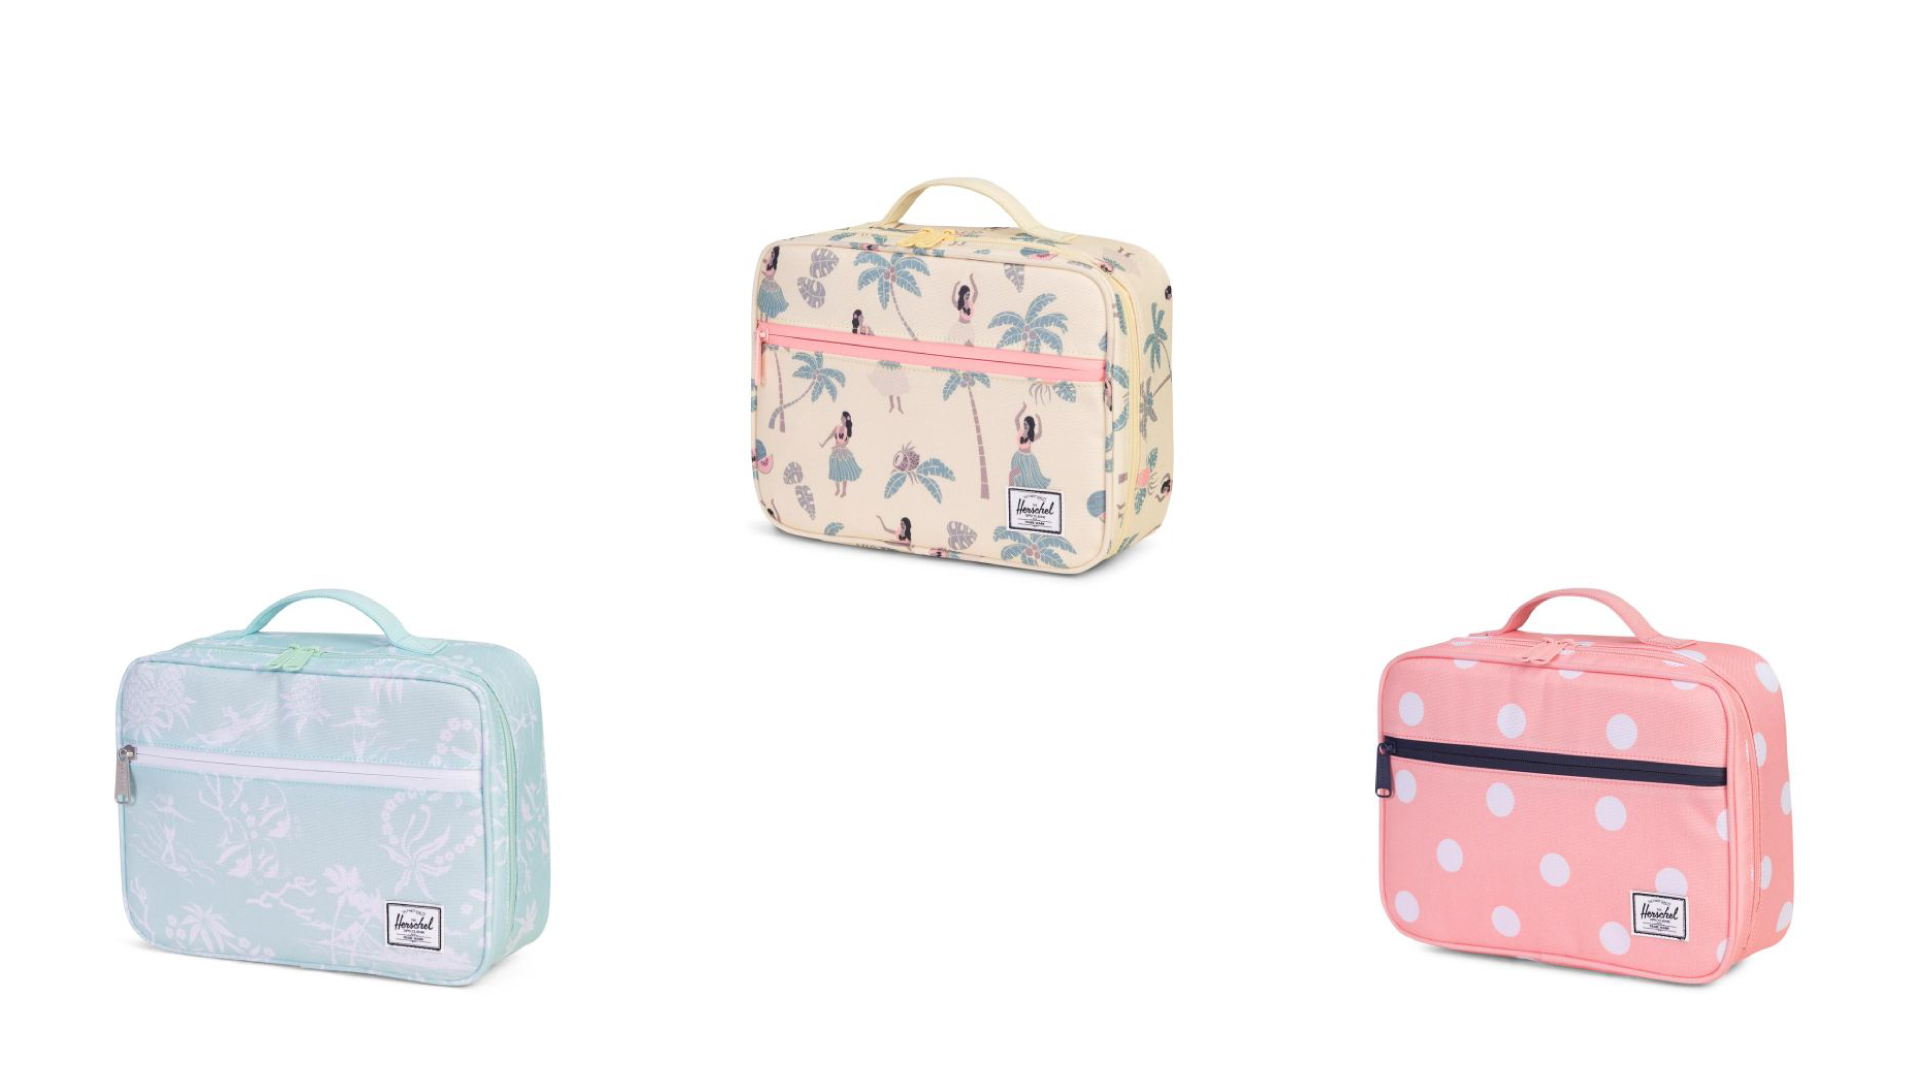 Lunch bags by  Herschel . They have lots of different patterns to choose from!